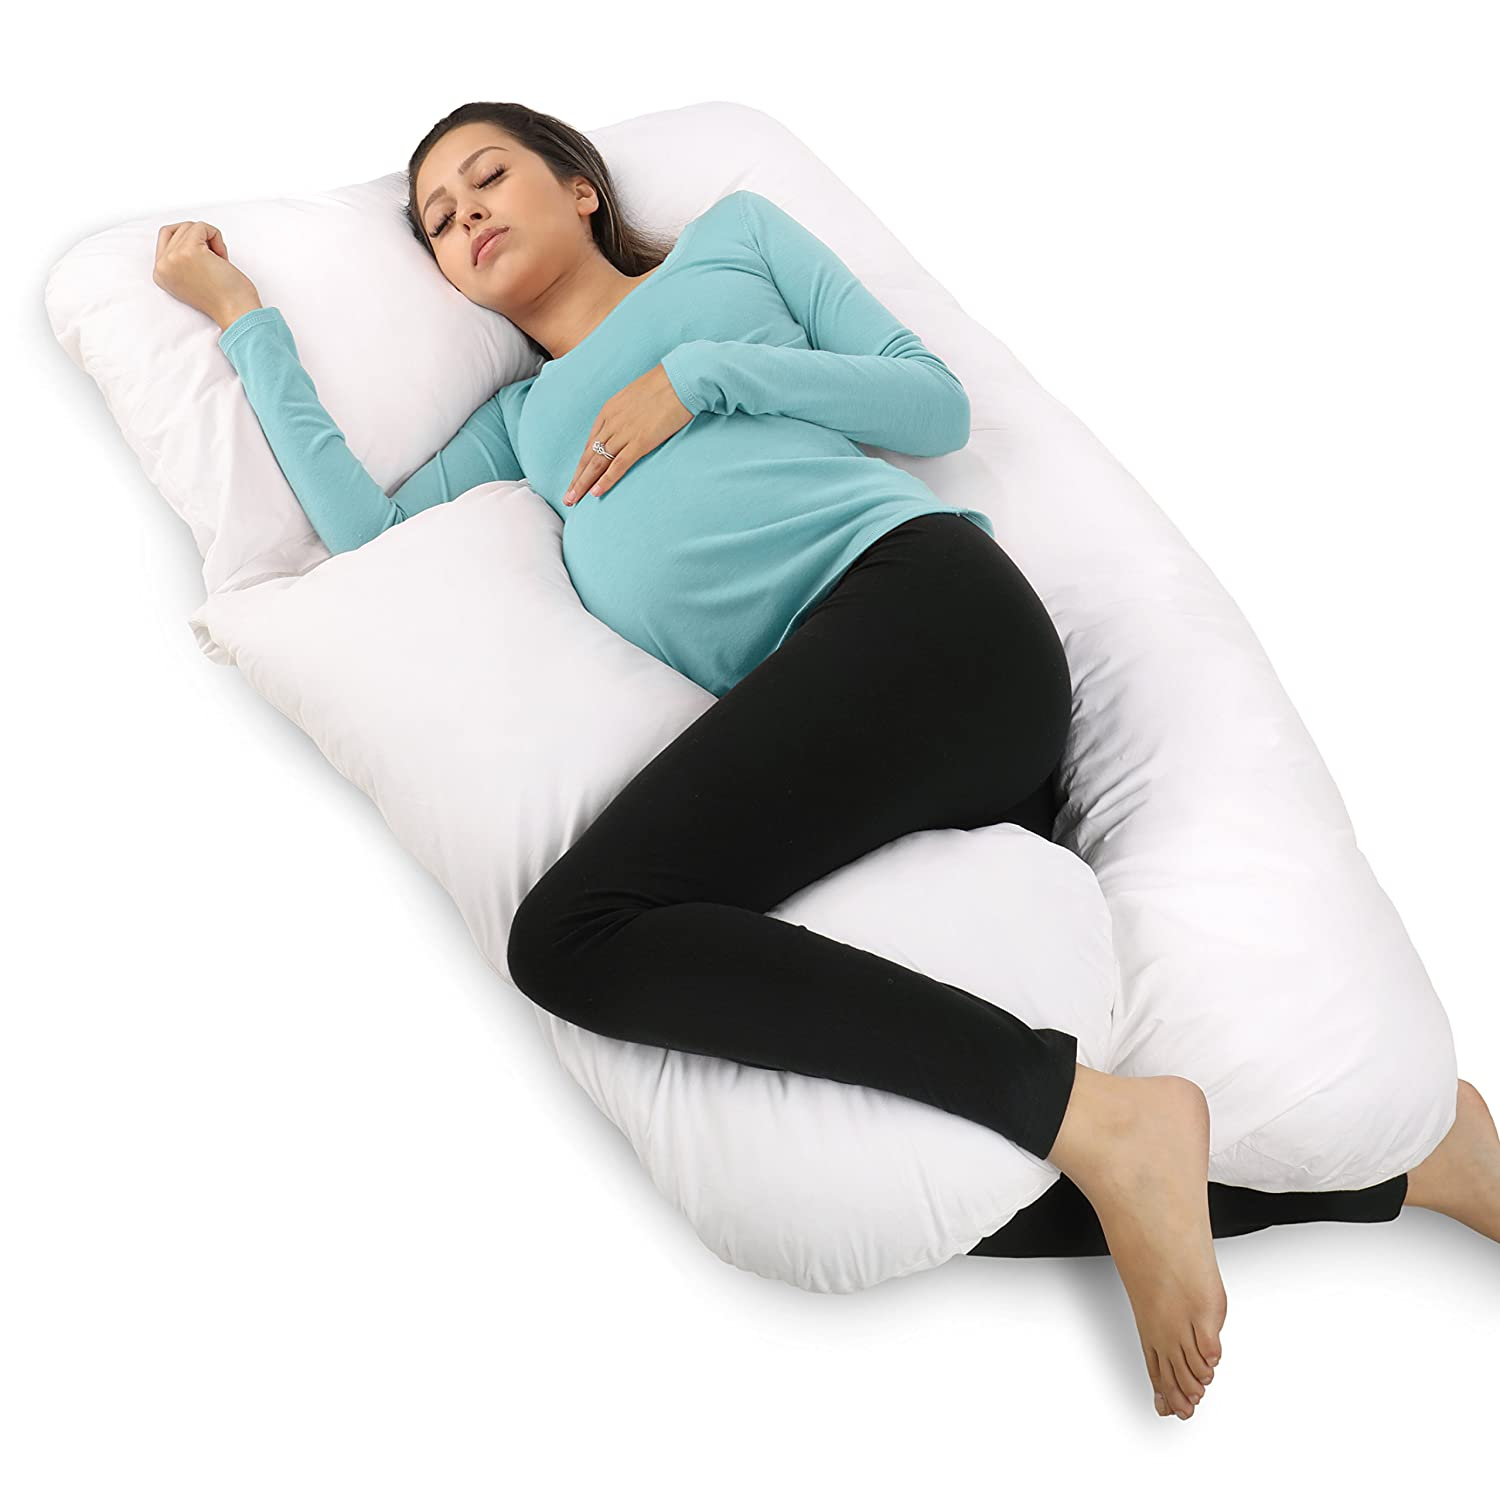 best born free maternity pregnancy y bargains body pillow the baby comfortfit